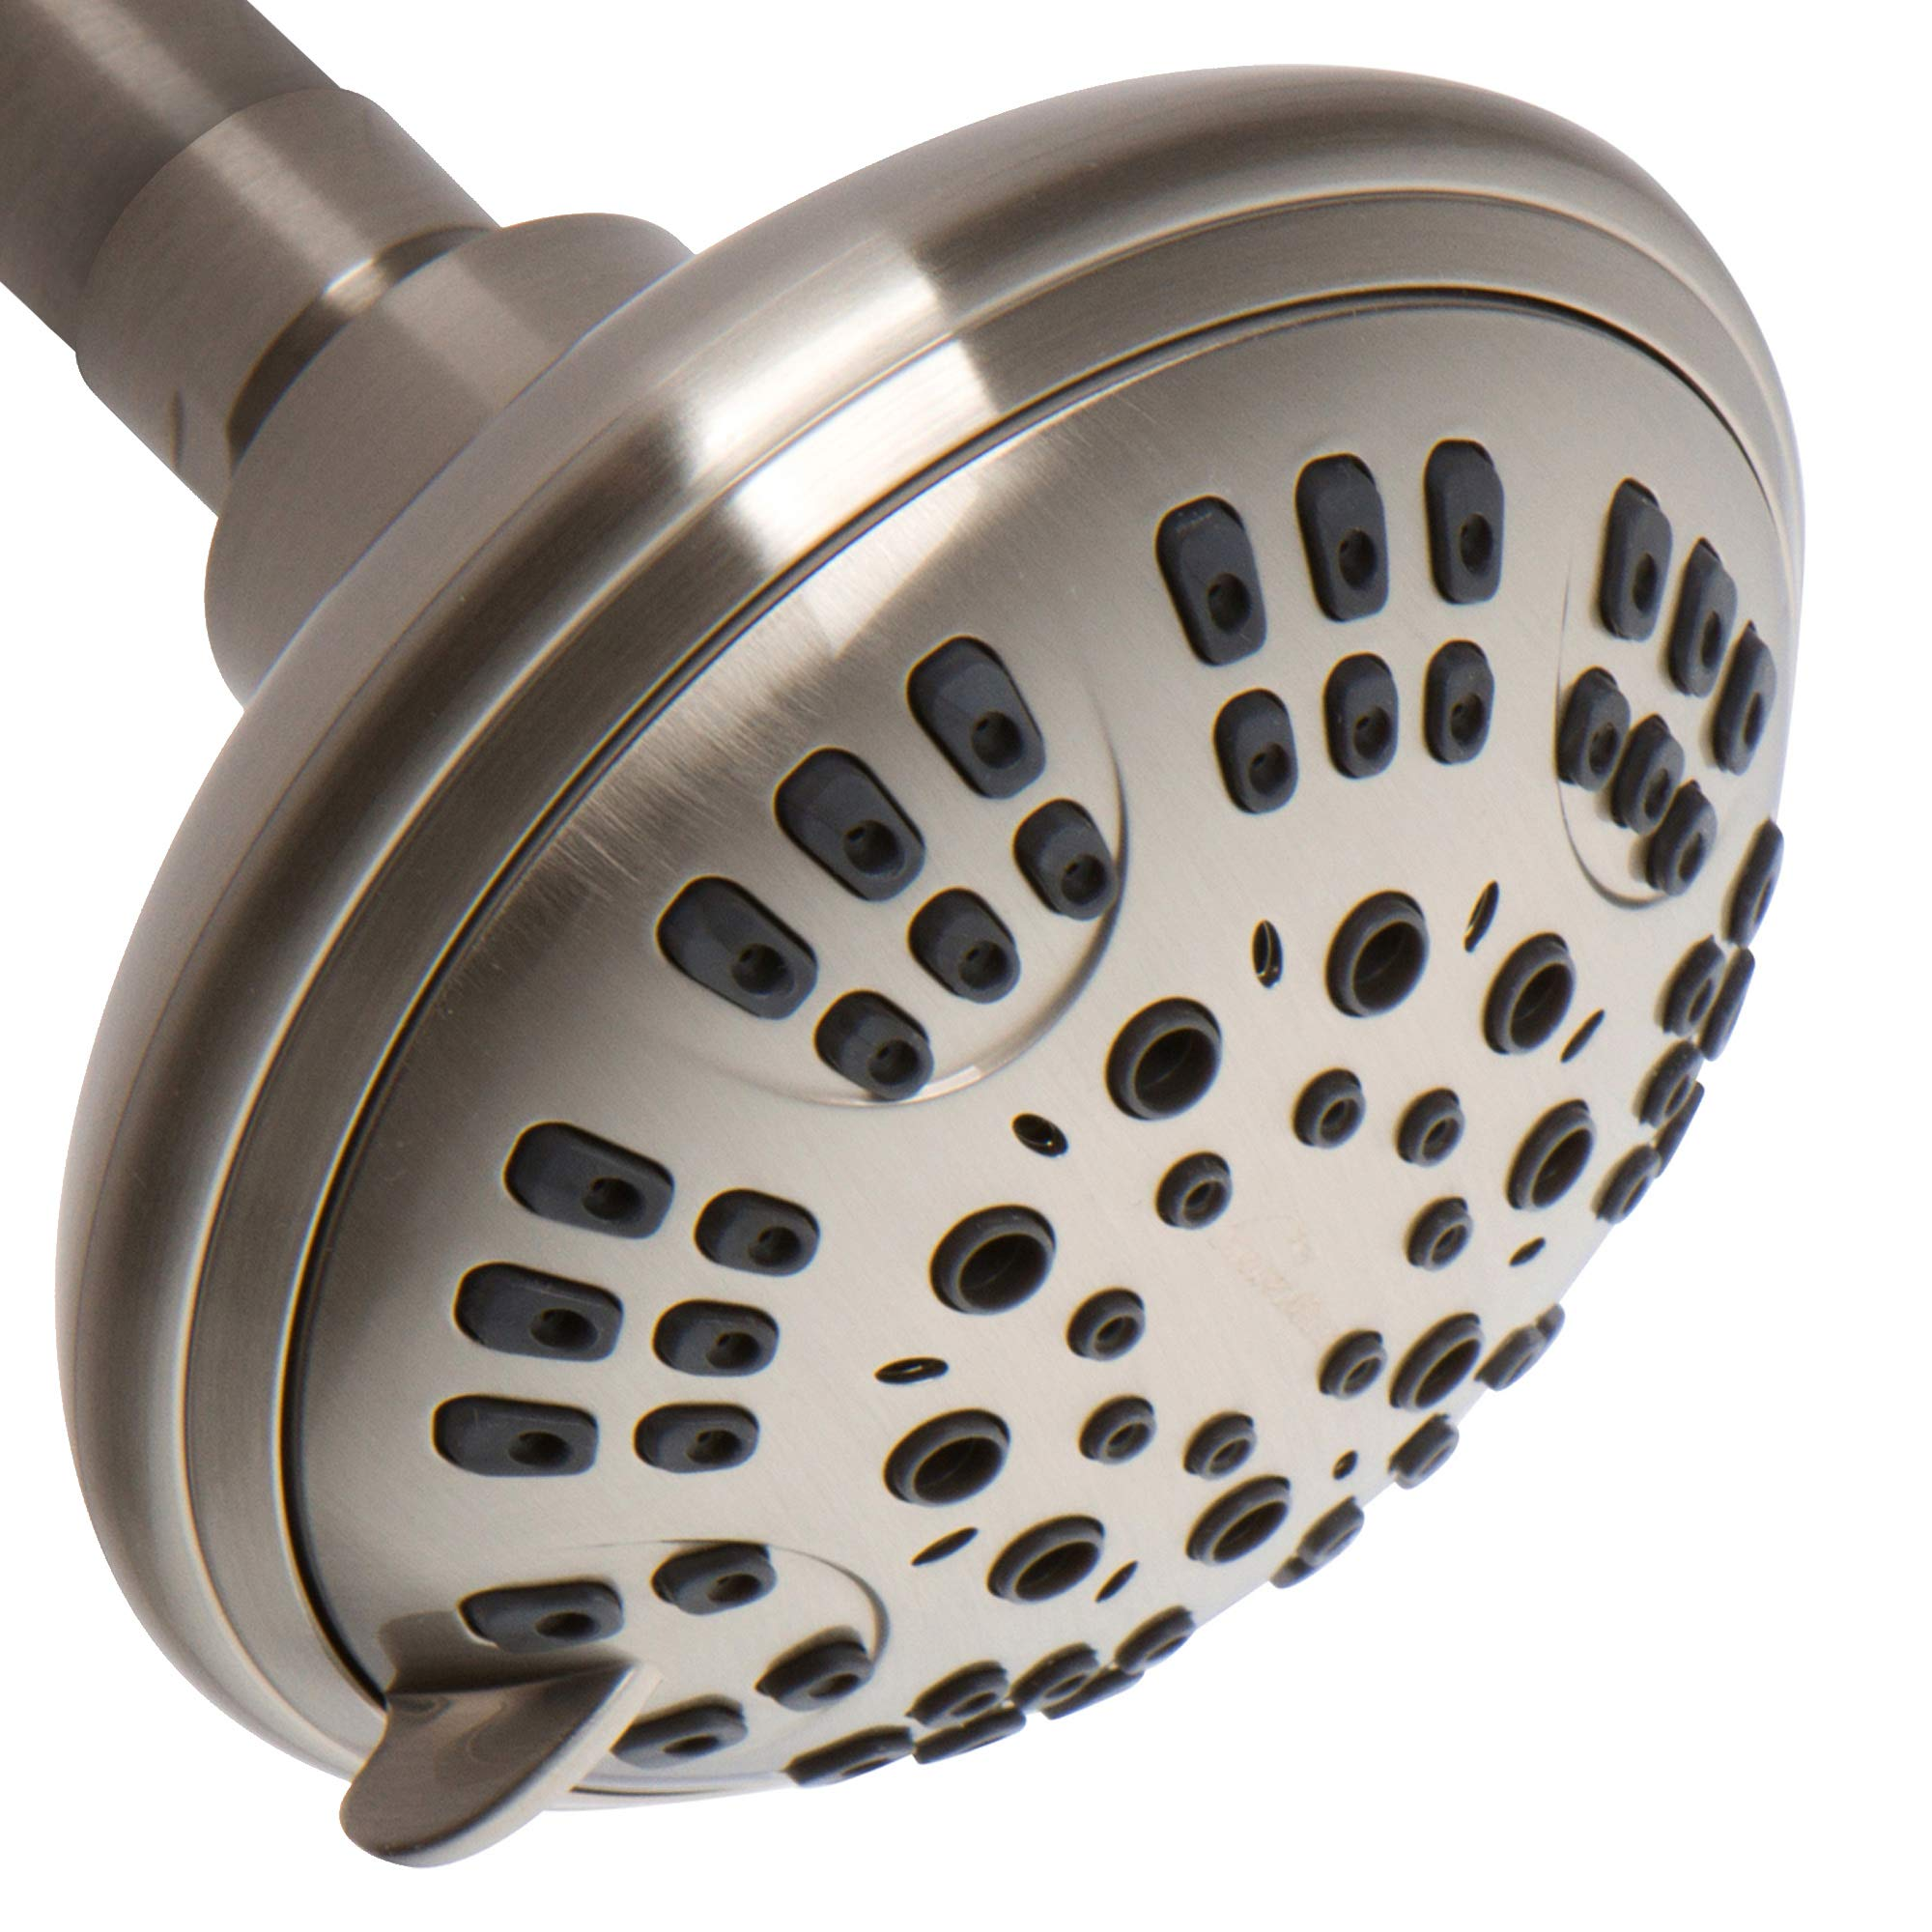 ShowerMaxx | Luxury Fixed Shower Head in Brushed Nickel Finish | Self Cleaning Nozzle Heads with 6-Settings Control | High Pressure Powerful Jets with Massage Spray | Wall Mount Adjustable Showerhead by ShowerMaxx (Image #1)